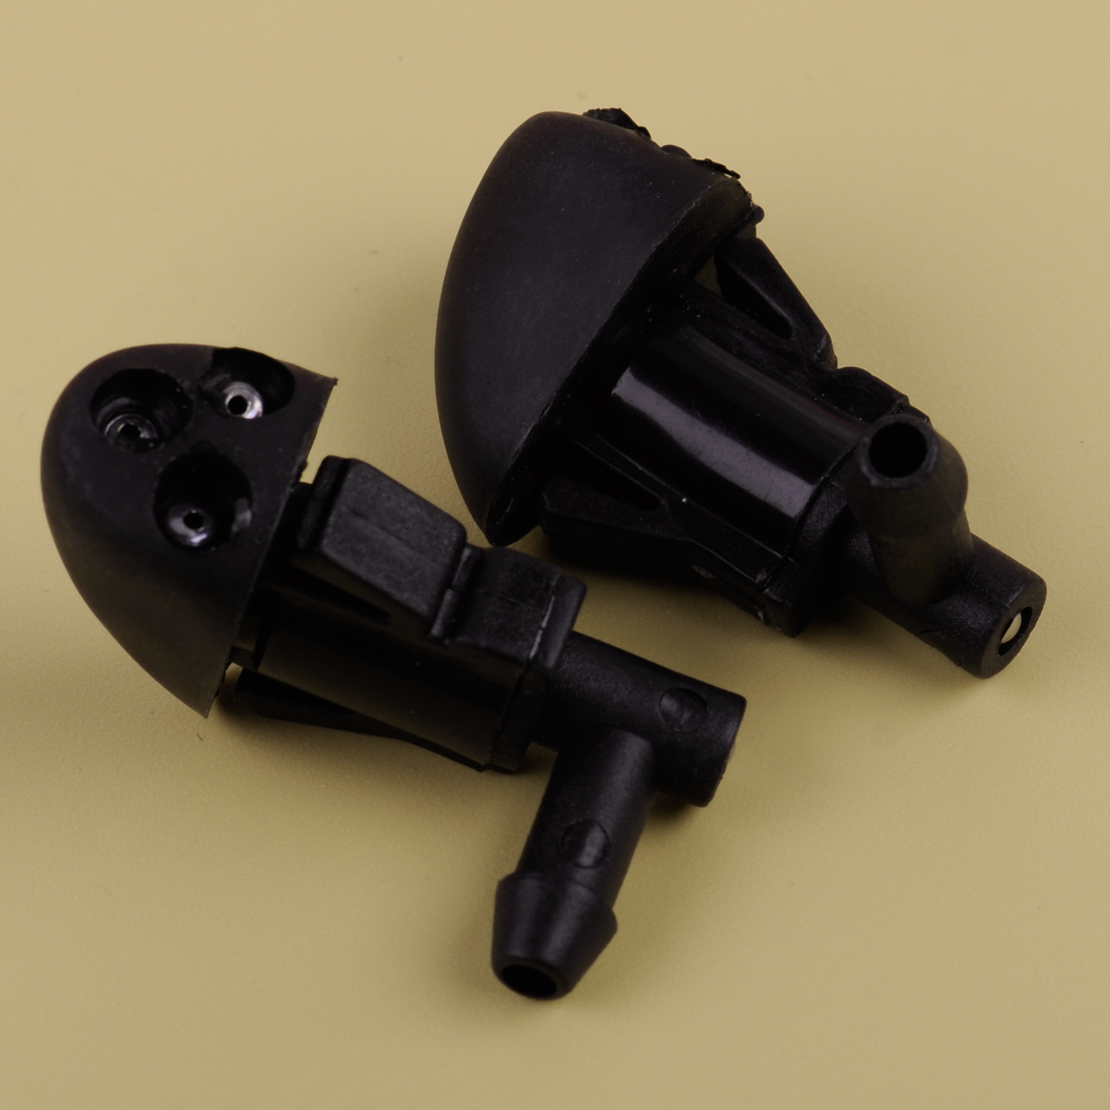 CITALL New 2pcs Black Car Windshield Washer Wiper Spray Water Nozzle Fit For Chevrolet Cruze